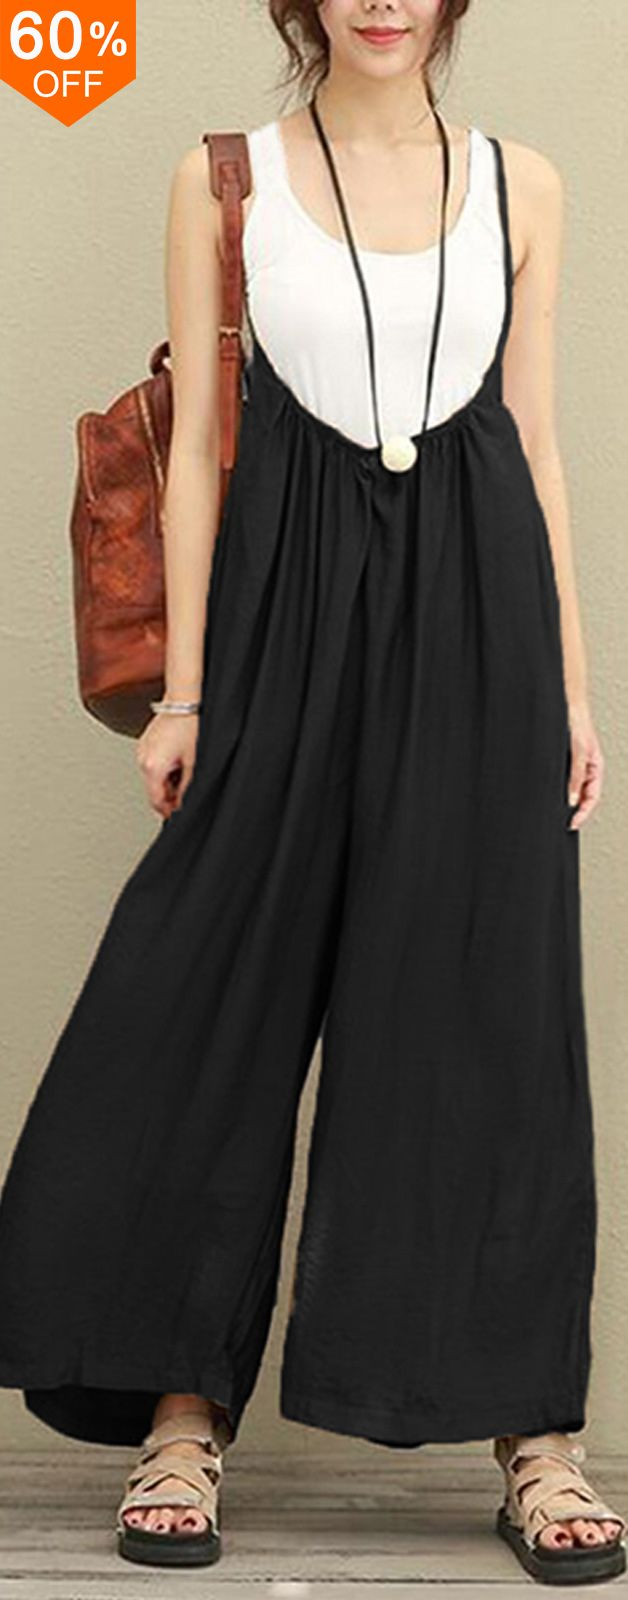 I love those fashionable and beautiful jumpsuits from banggood.com. Find the most suitable and comfortable outfit at incredibly low prices here.  #women #leggings #outfit